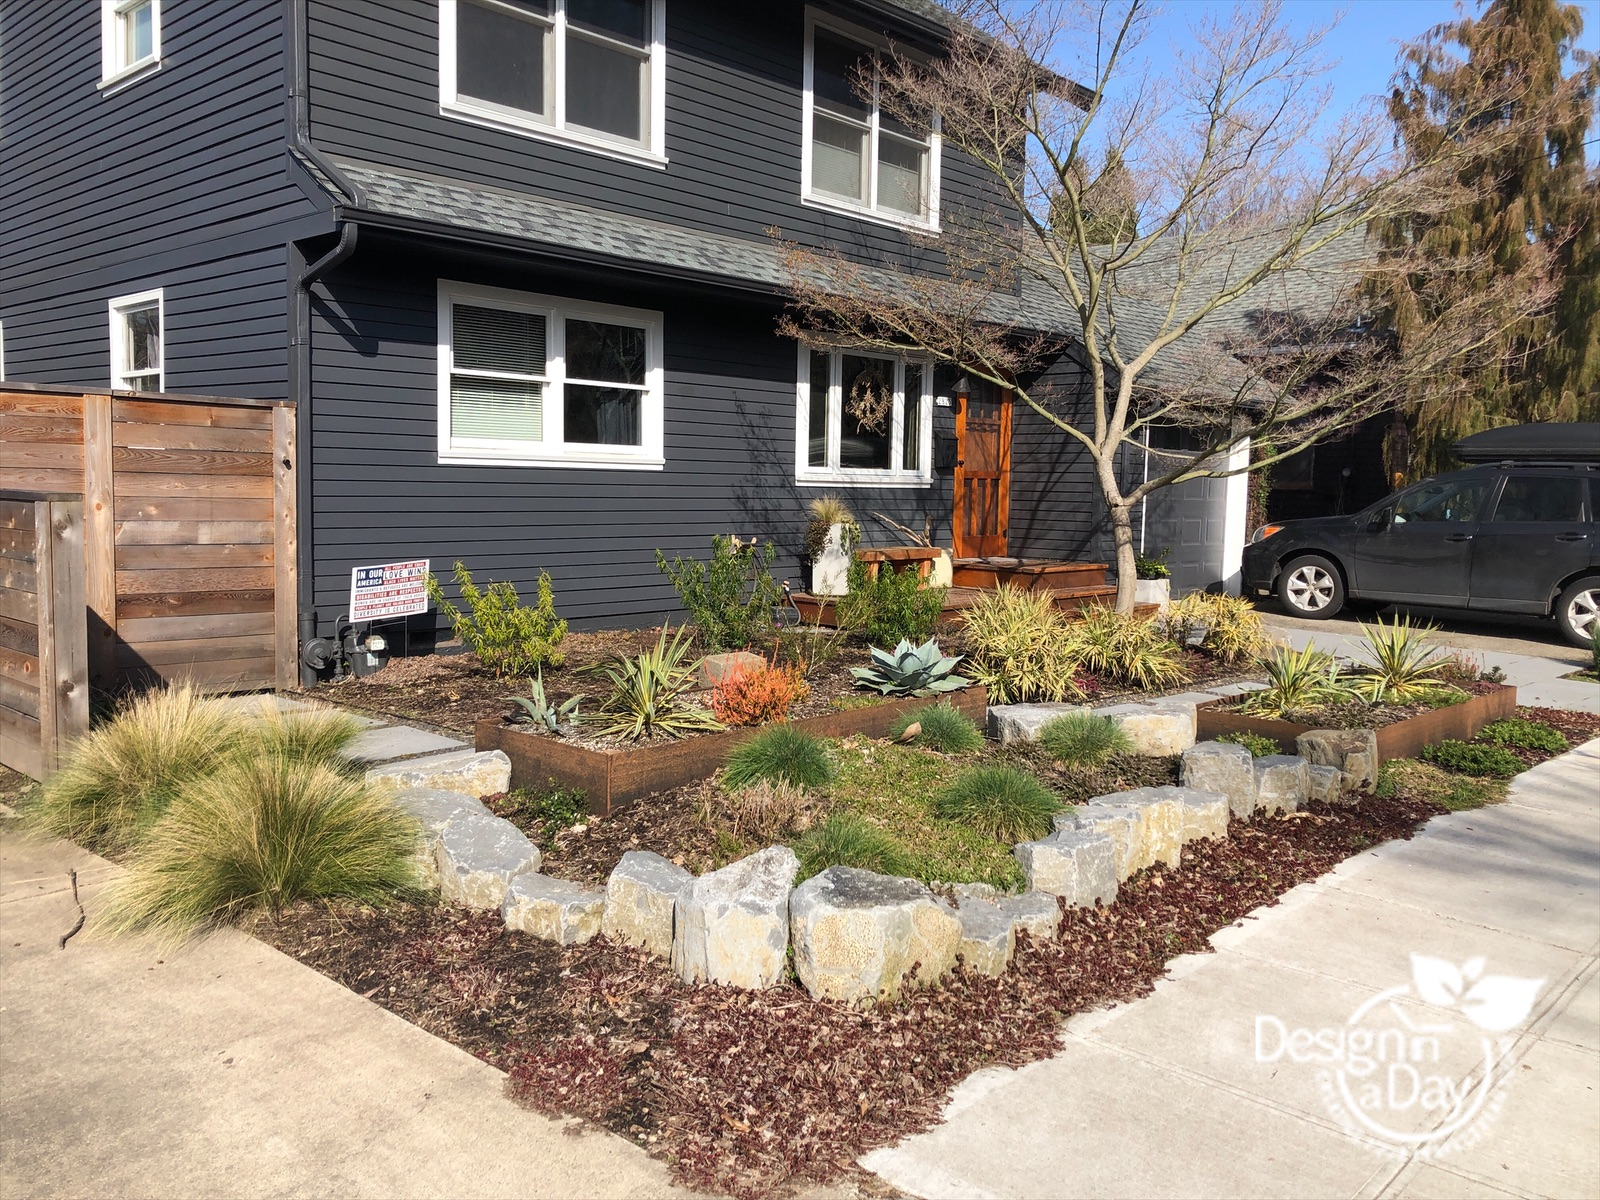 Drought tolerant front yard landscaping in Portland.